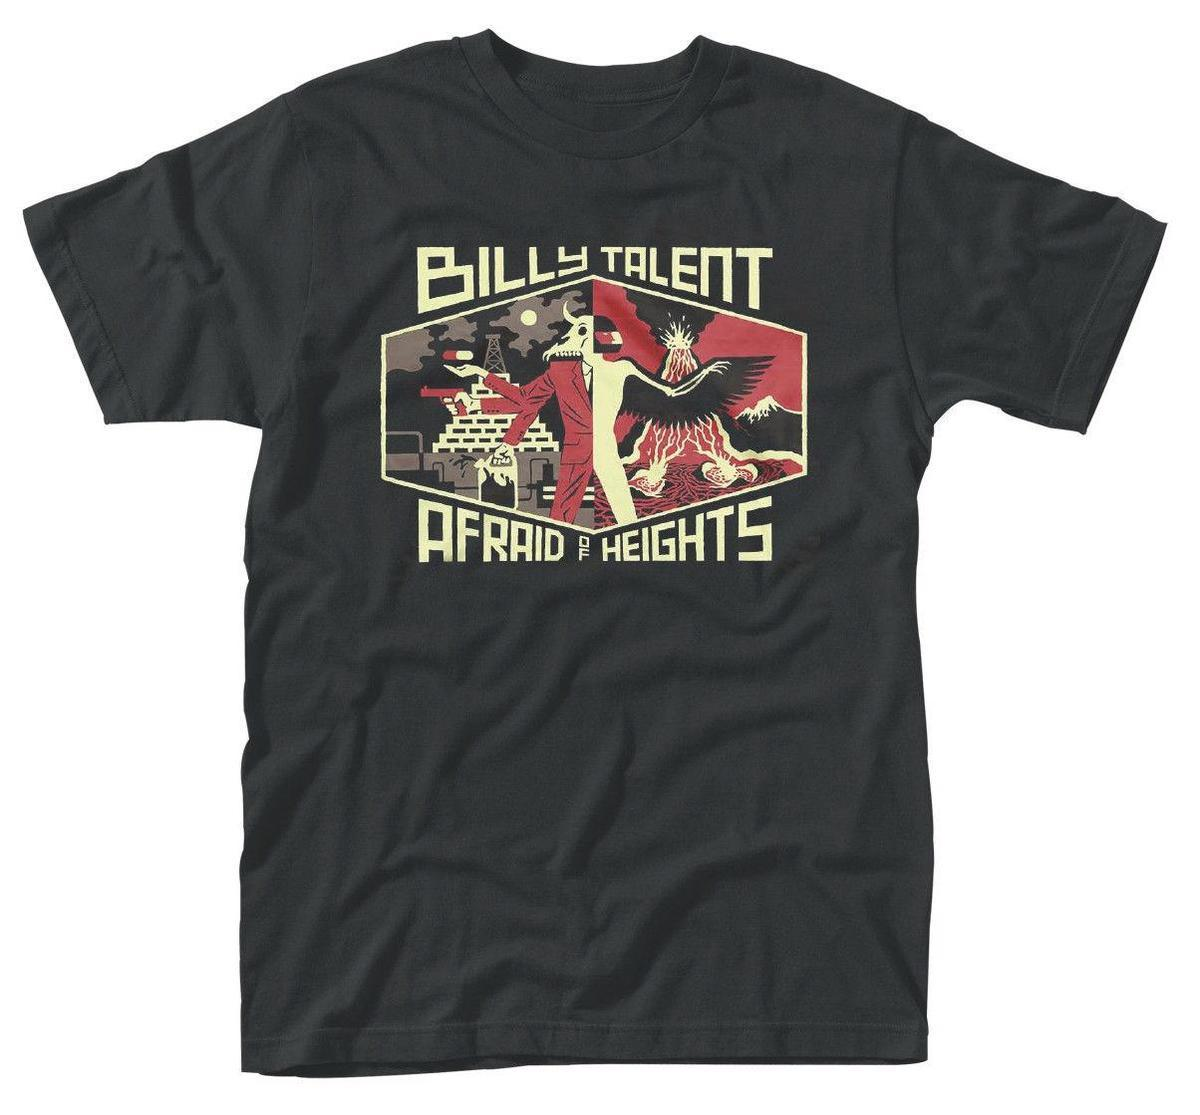 Camiseta de Billy Talent 'Afraid Of Heights' - NUEVO OFICIAL